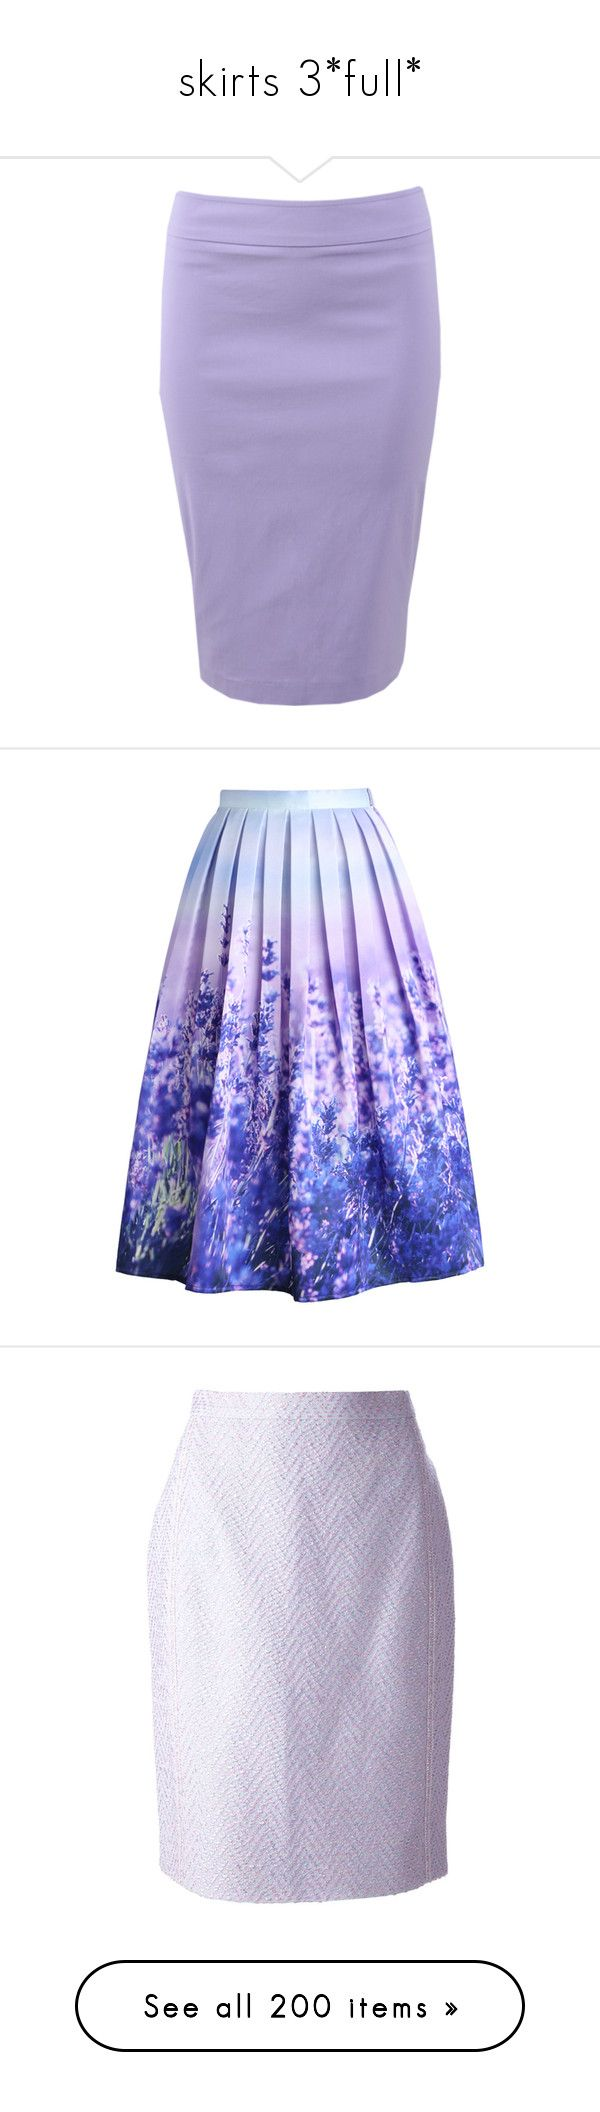 """skirts 3*full*"" by crossjaden on Polyvore featuring skirts, stretchy skirts, wide skirt, stretch skirts, pull on pencil skirt, knee high skirts, bottoms, saias, gonne and purple"